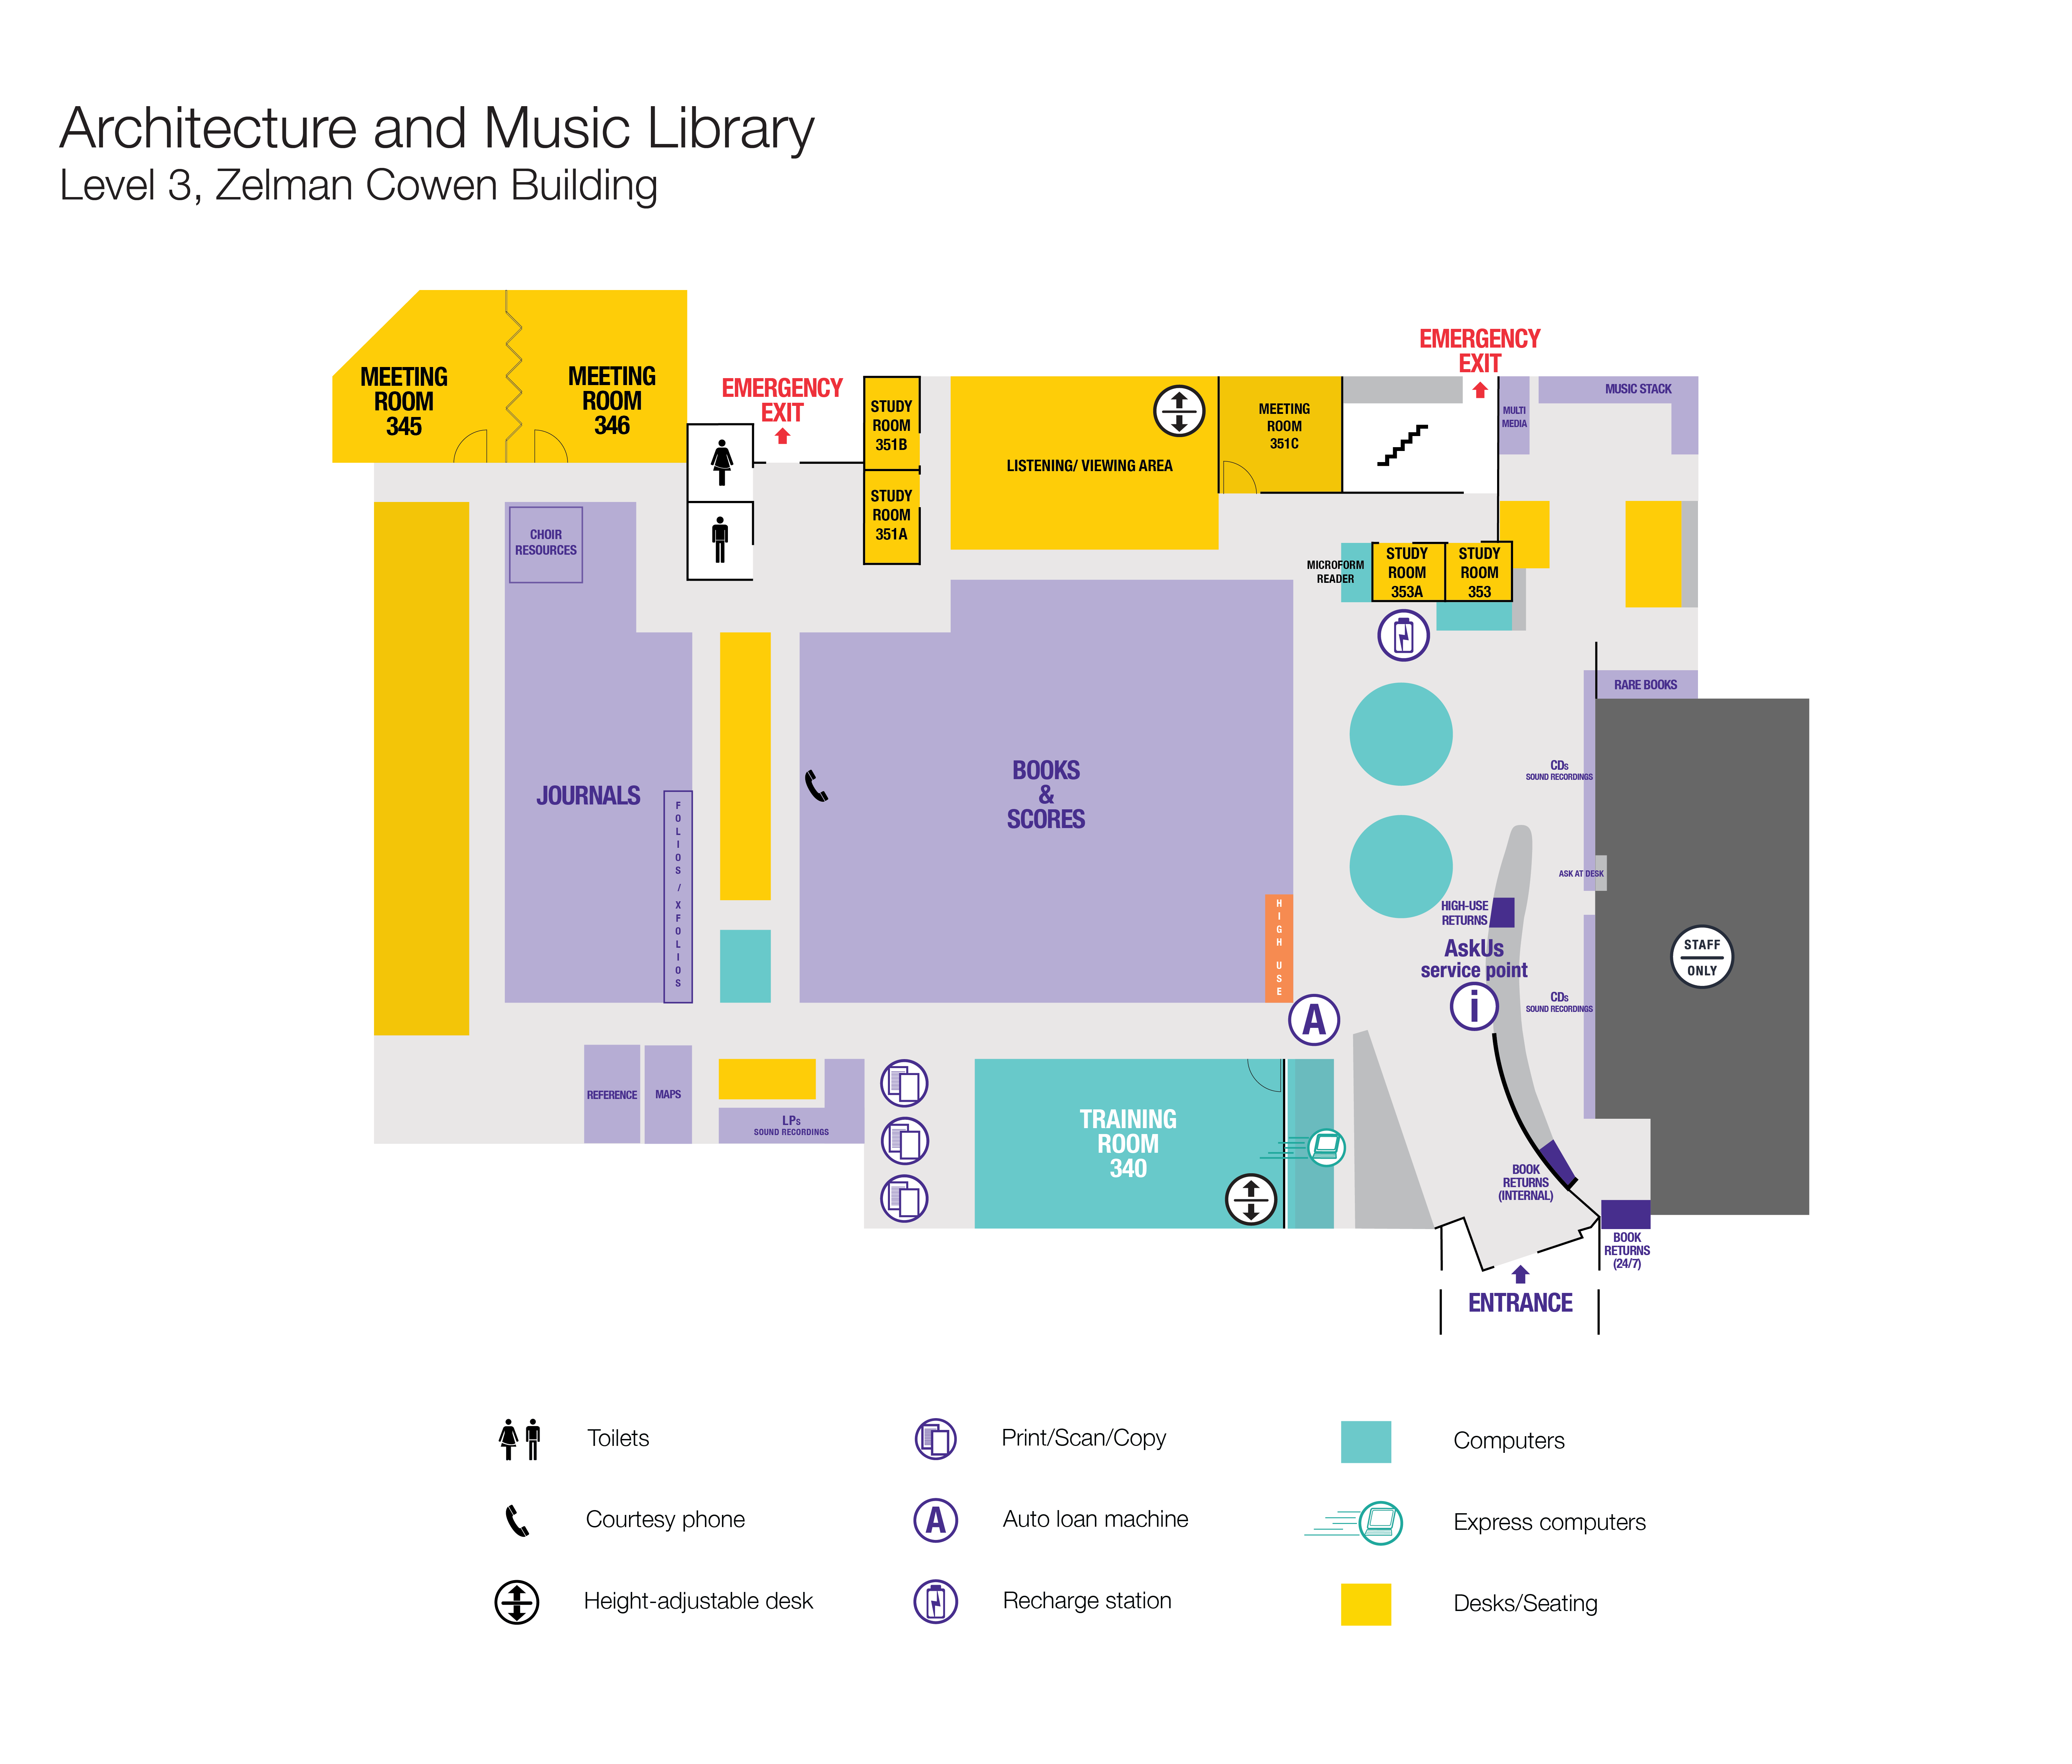 Architecture and Music Library floor plan